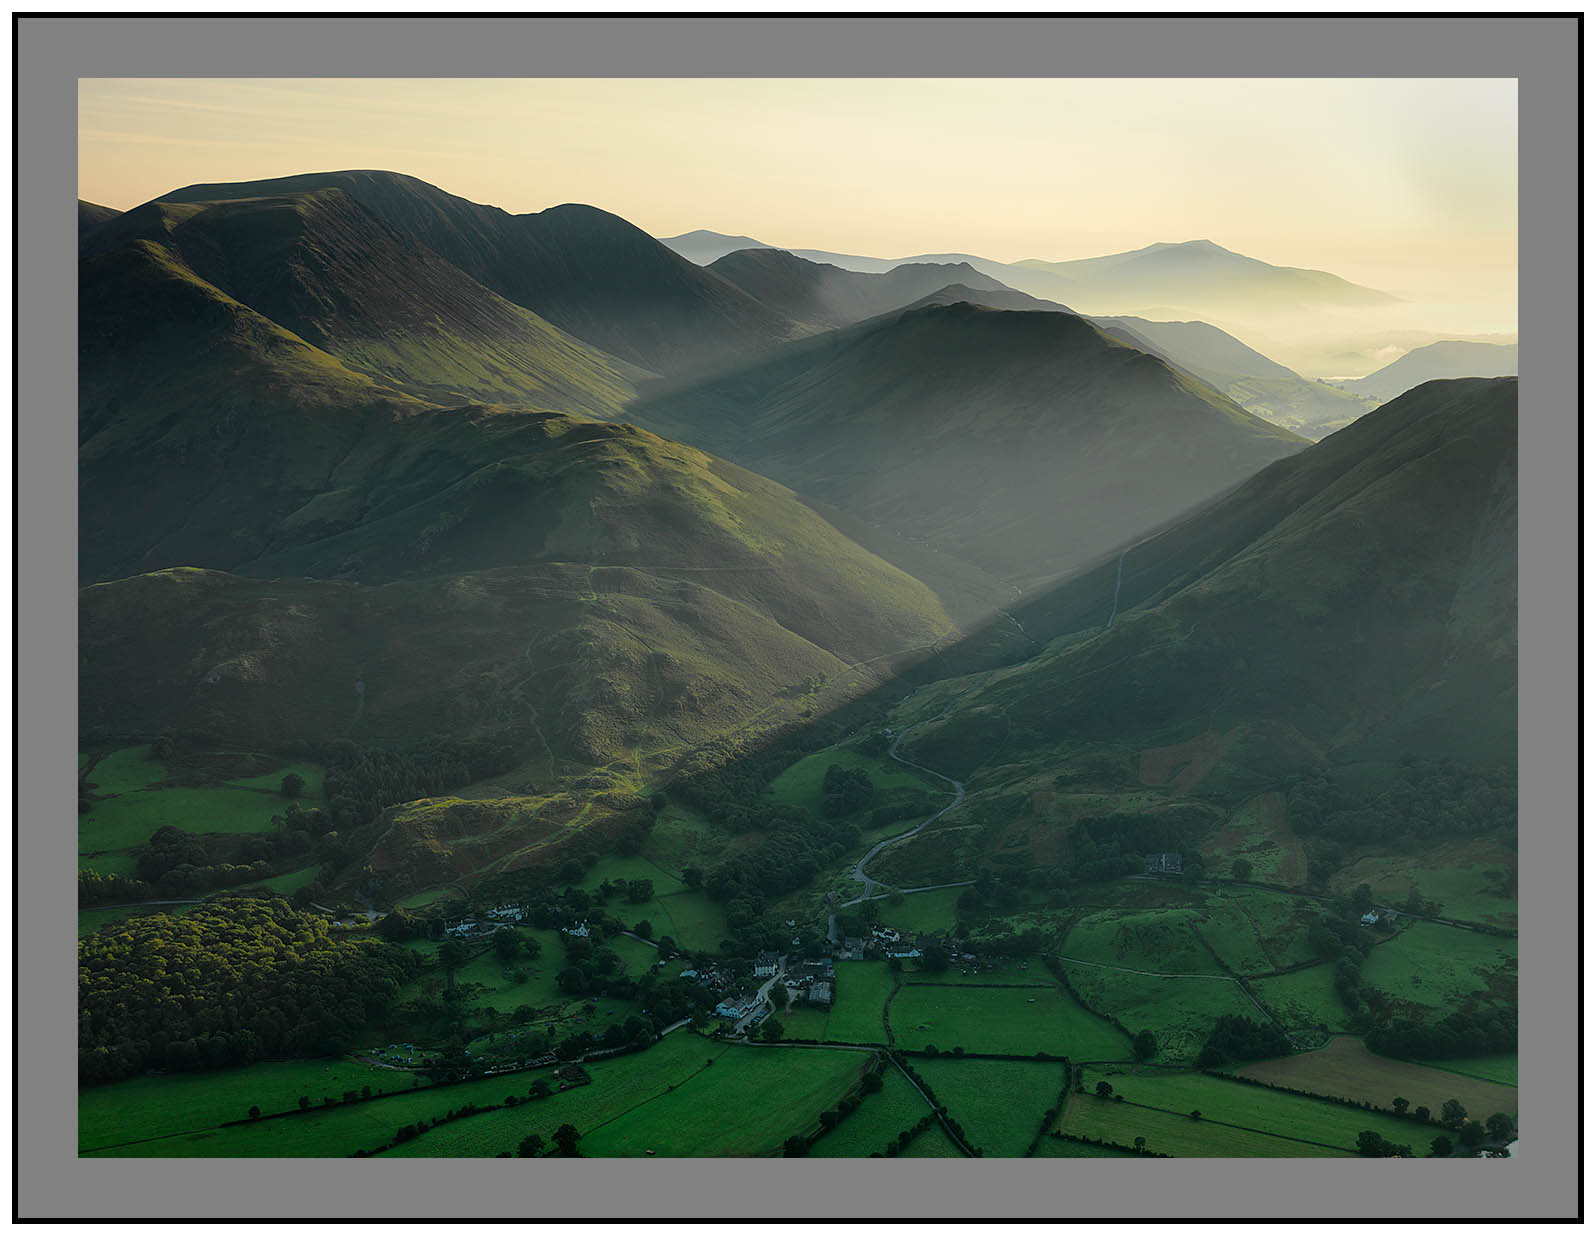 A 09640 Daybreak on Buttermere village and the Newland Valley